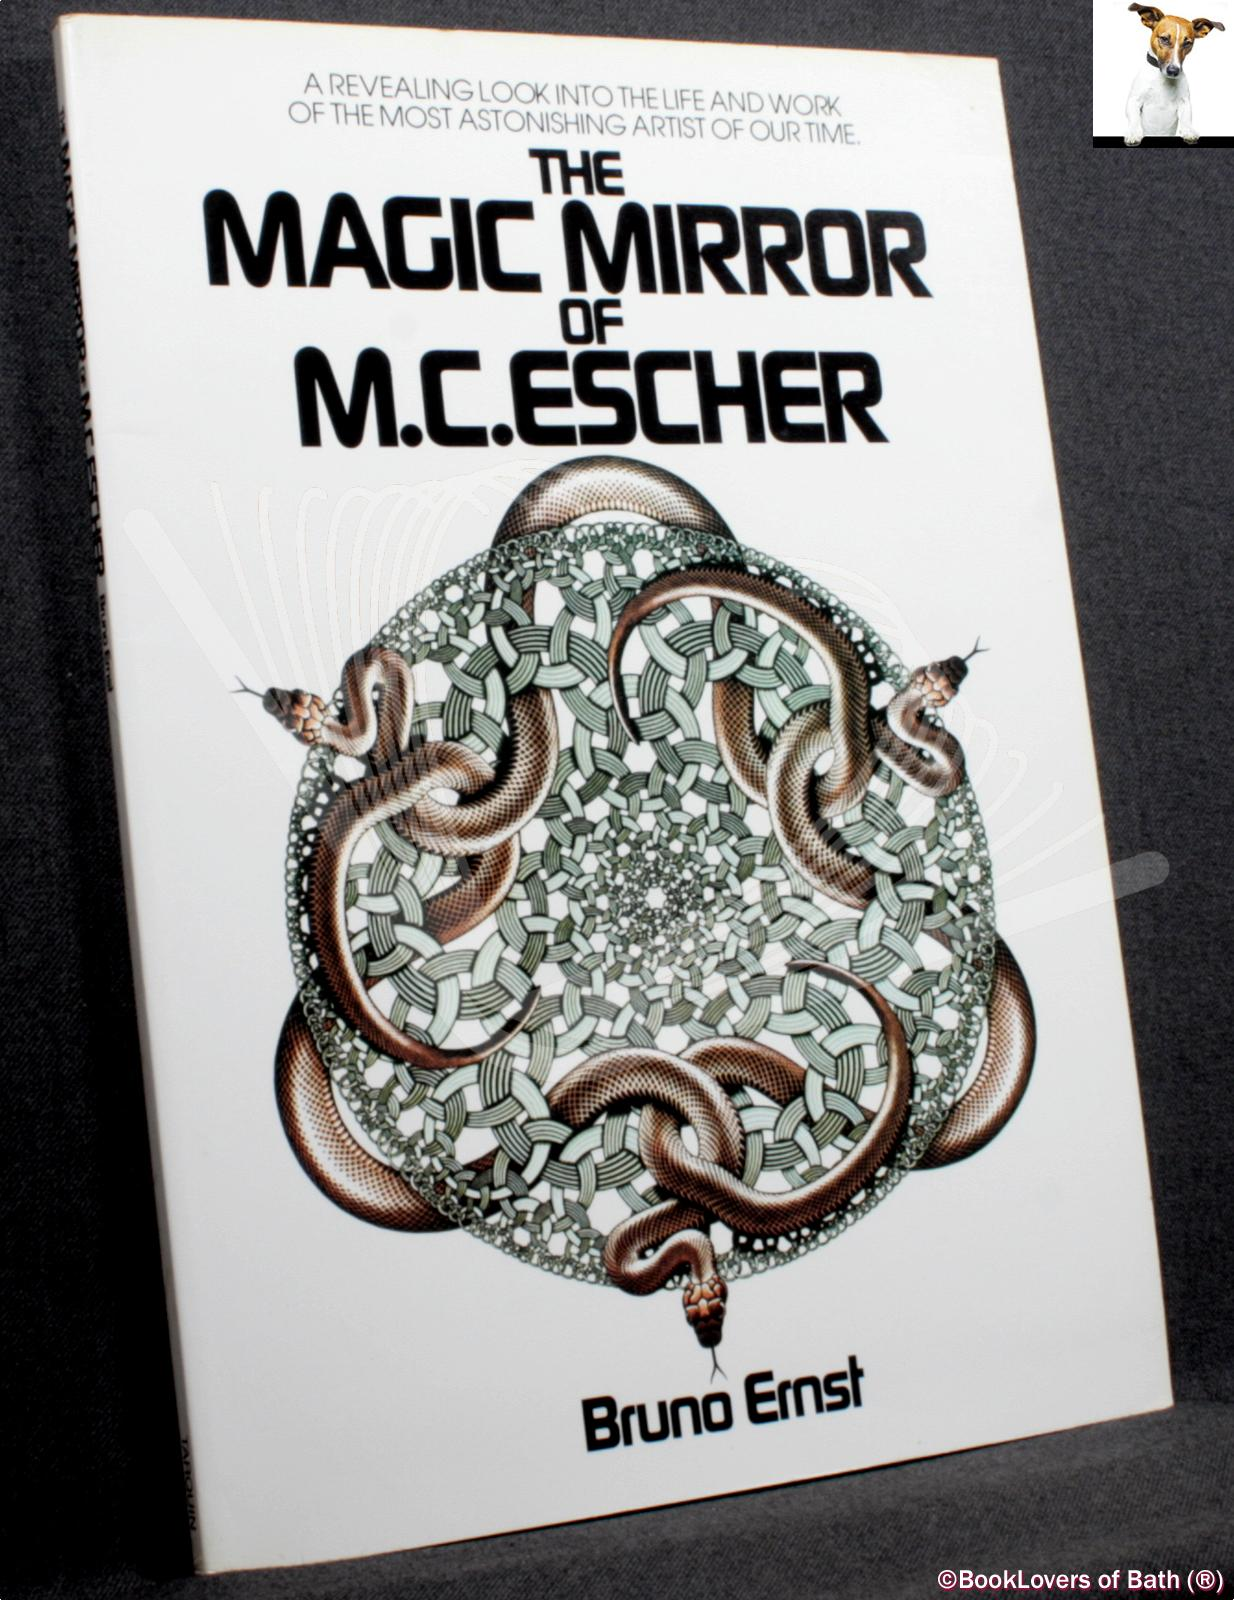 The Magic Mirror of M. C. Escher: A Revealing Look Into the Life and Work of the Most Astonishing Artist of Our Time - Bruno Ernst